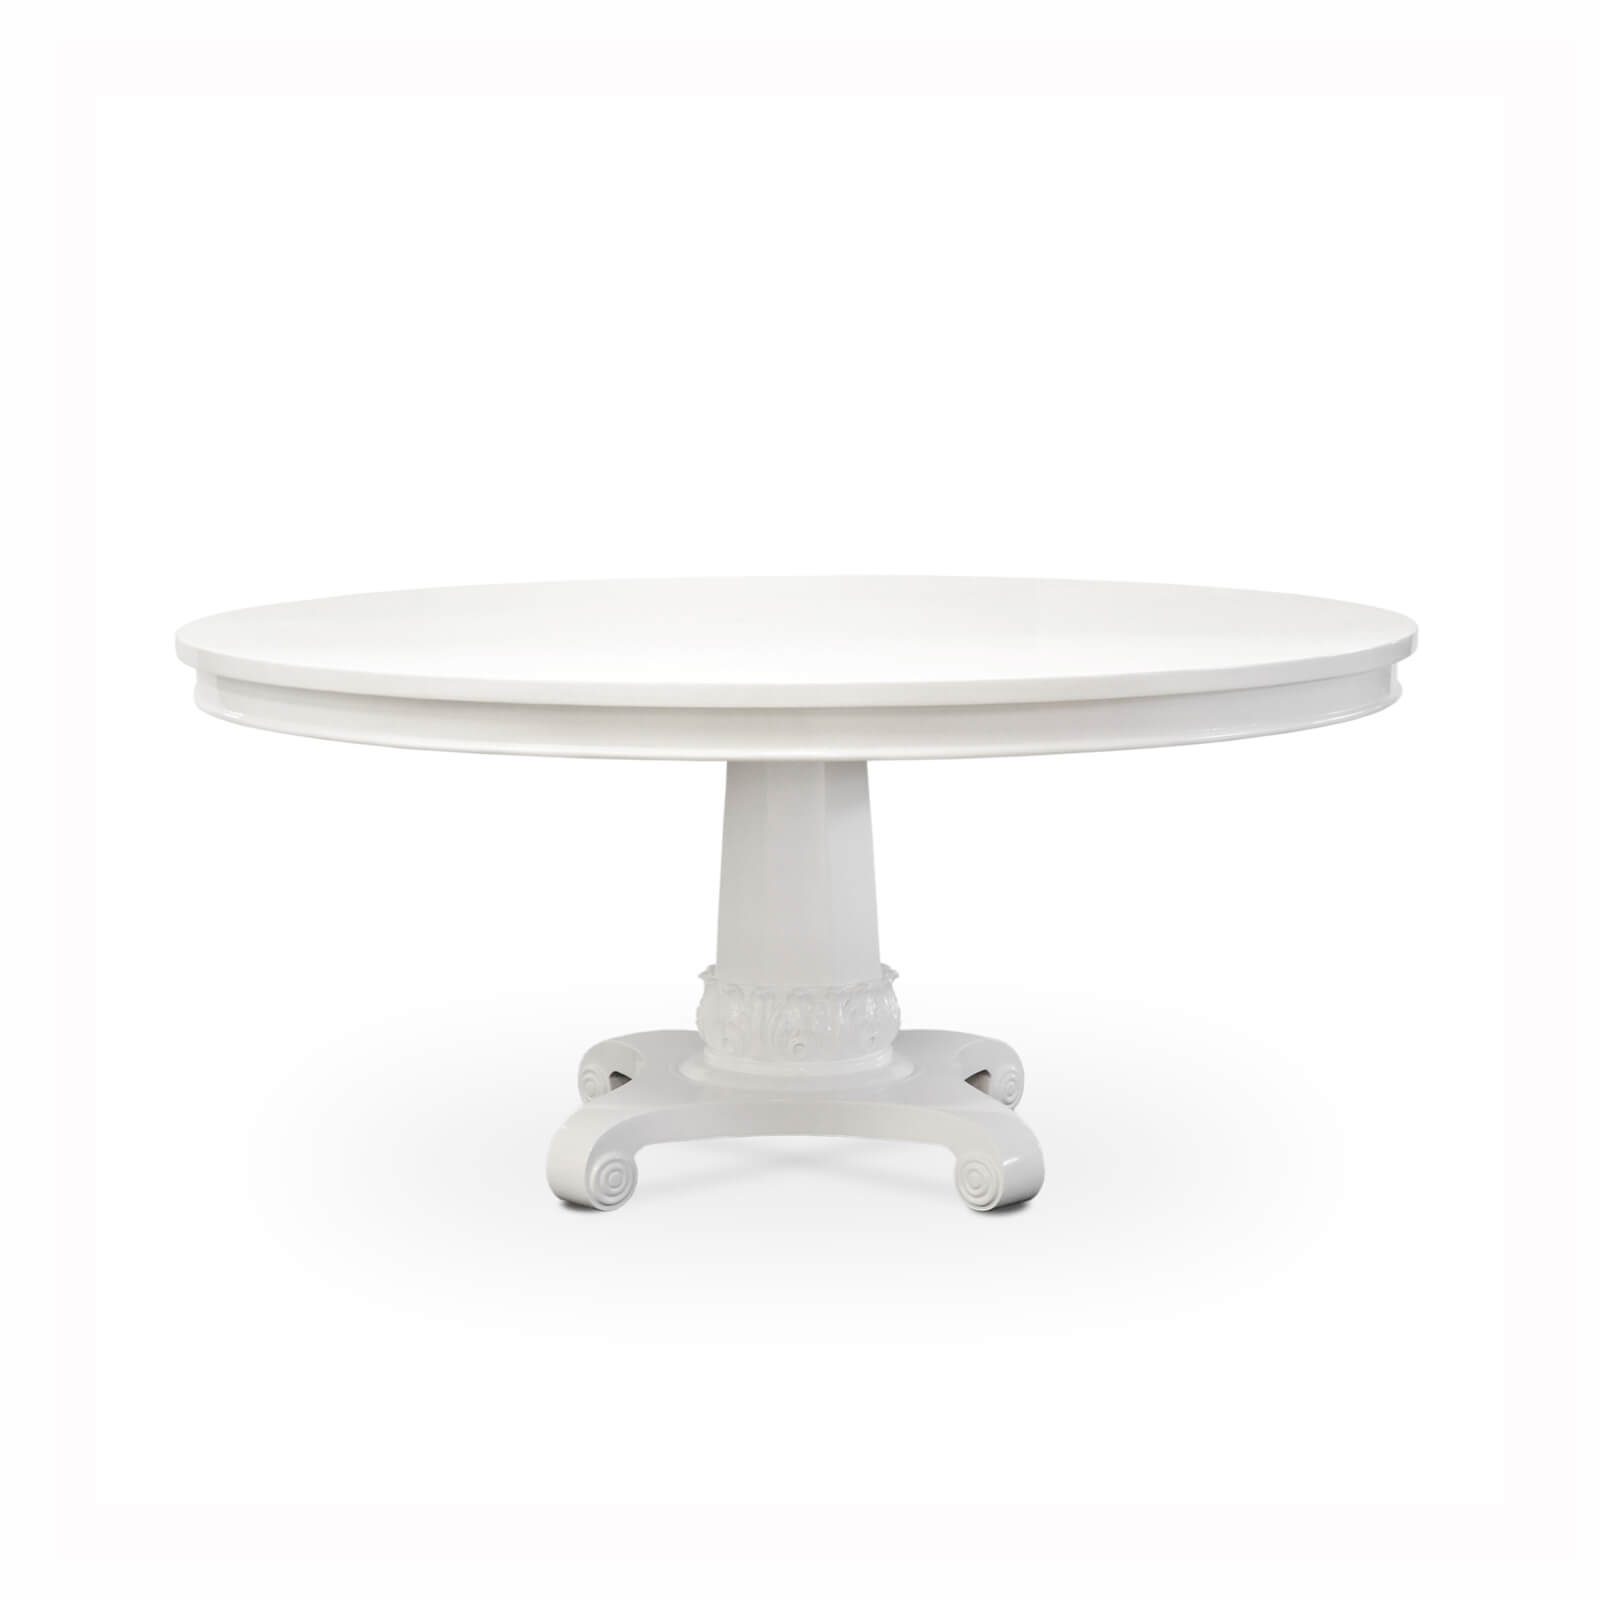 white dining table, colonial furniture, round dining table, mahogany